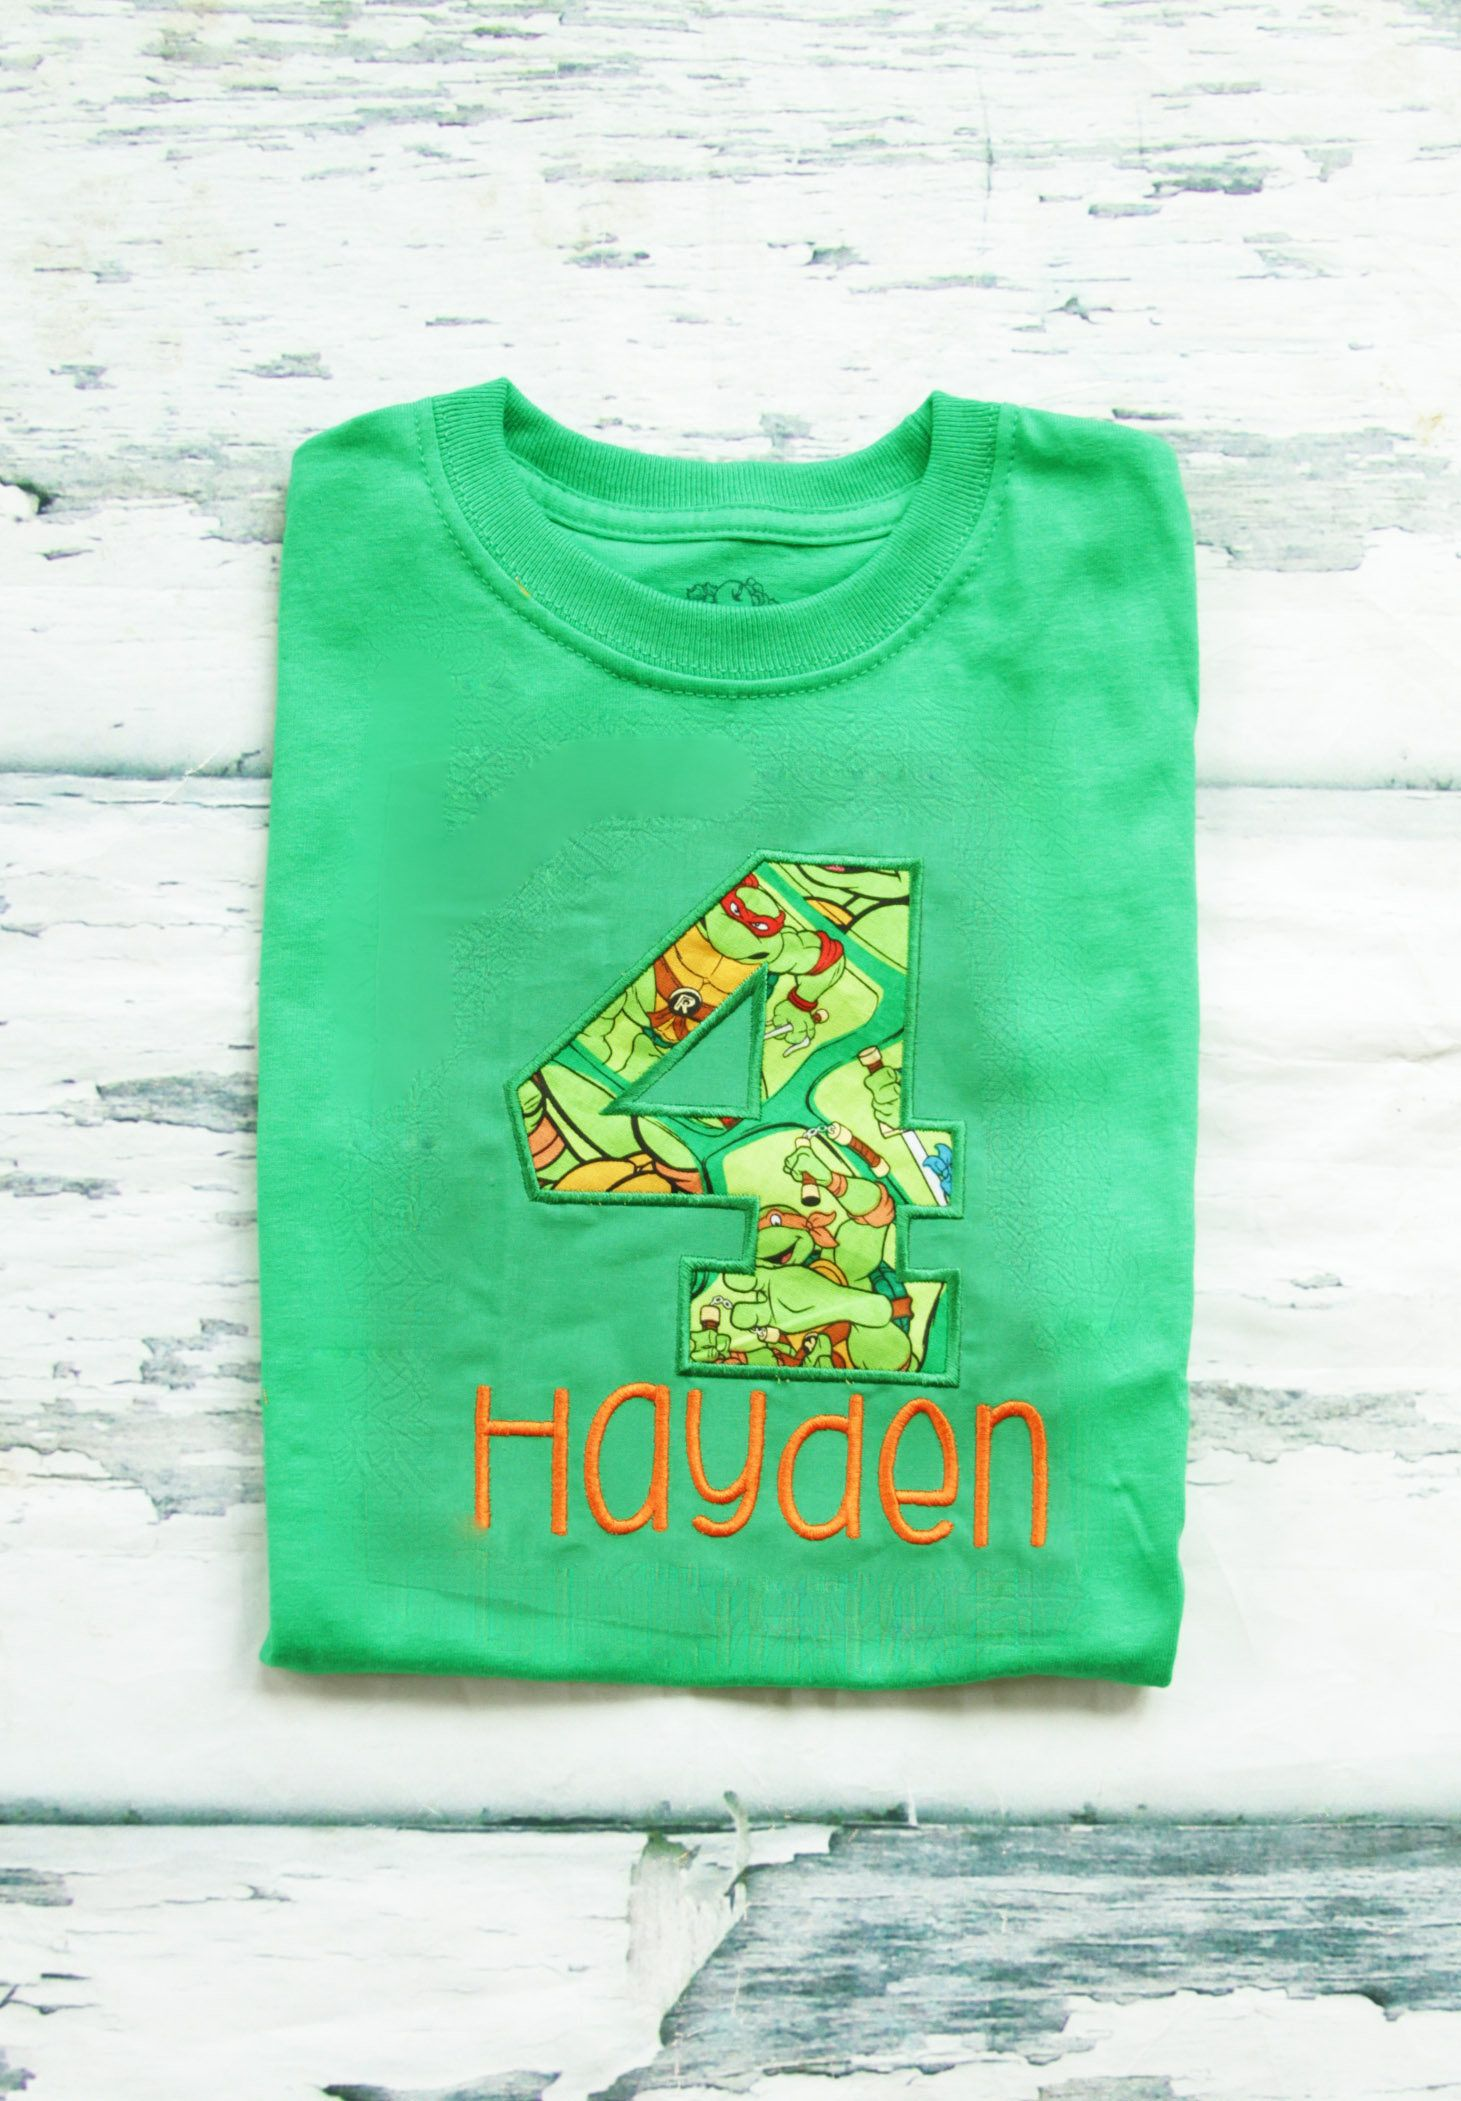 Boy Fourth Birthday Ninja Turtle Themed 4th Shirt Toddler Green With Number 4 By LoveAndLollipopsBaby On